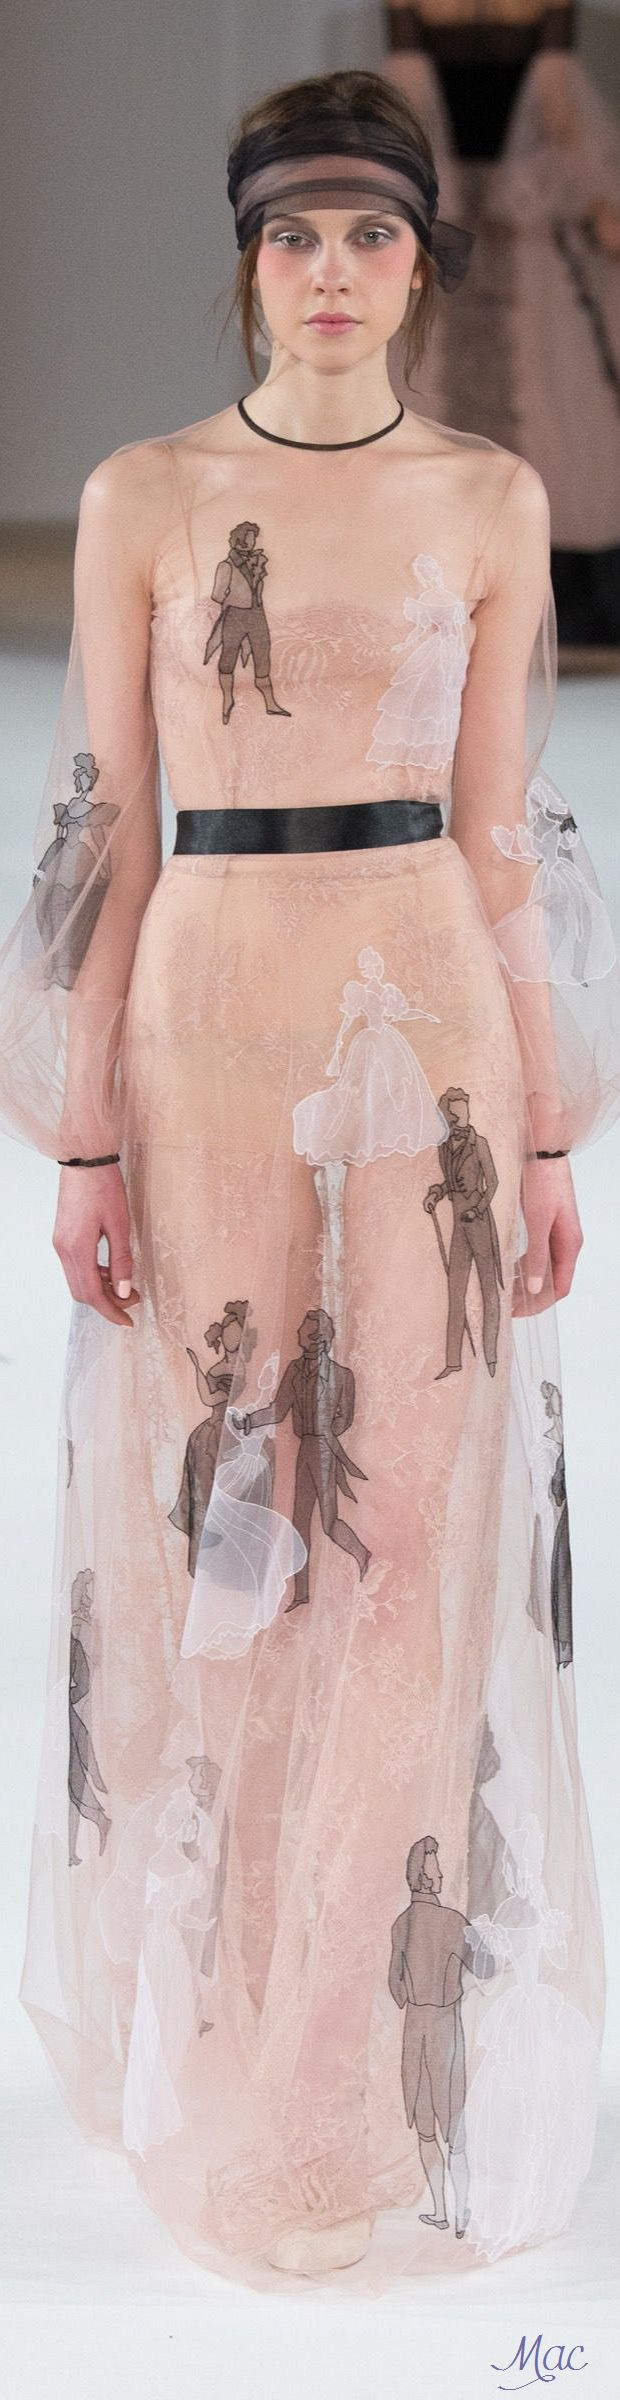 Spring 2016 Haute Couture Yanina jαɢlαdy.  This is the most amazing thing I've ever seen.